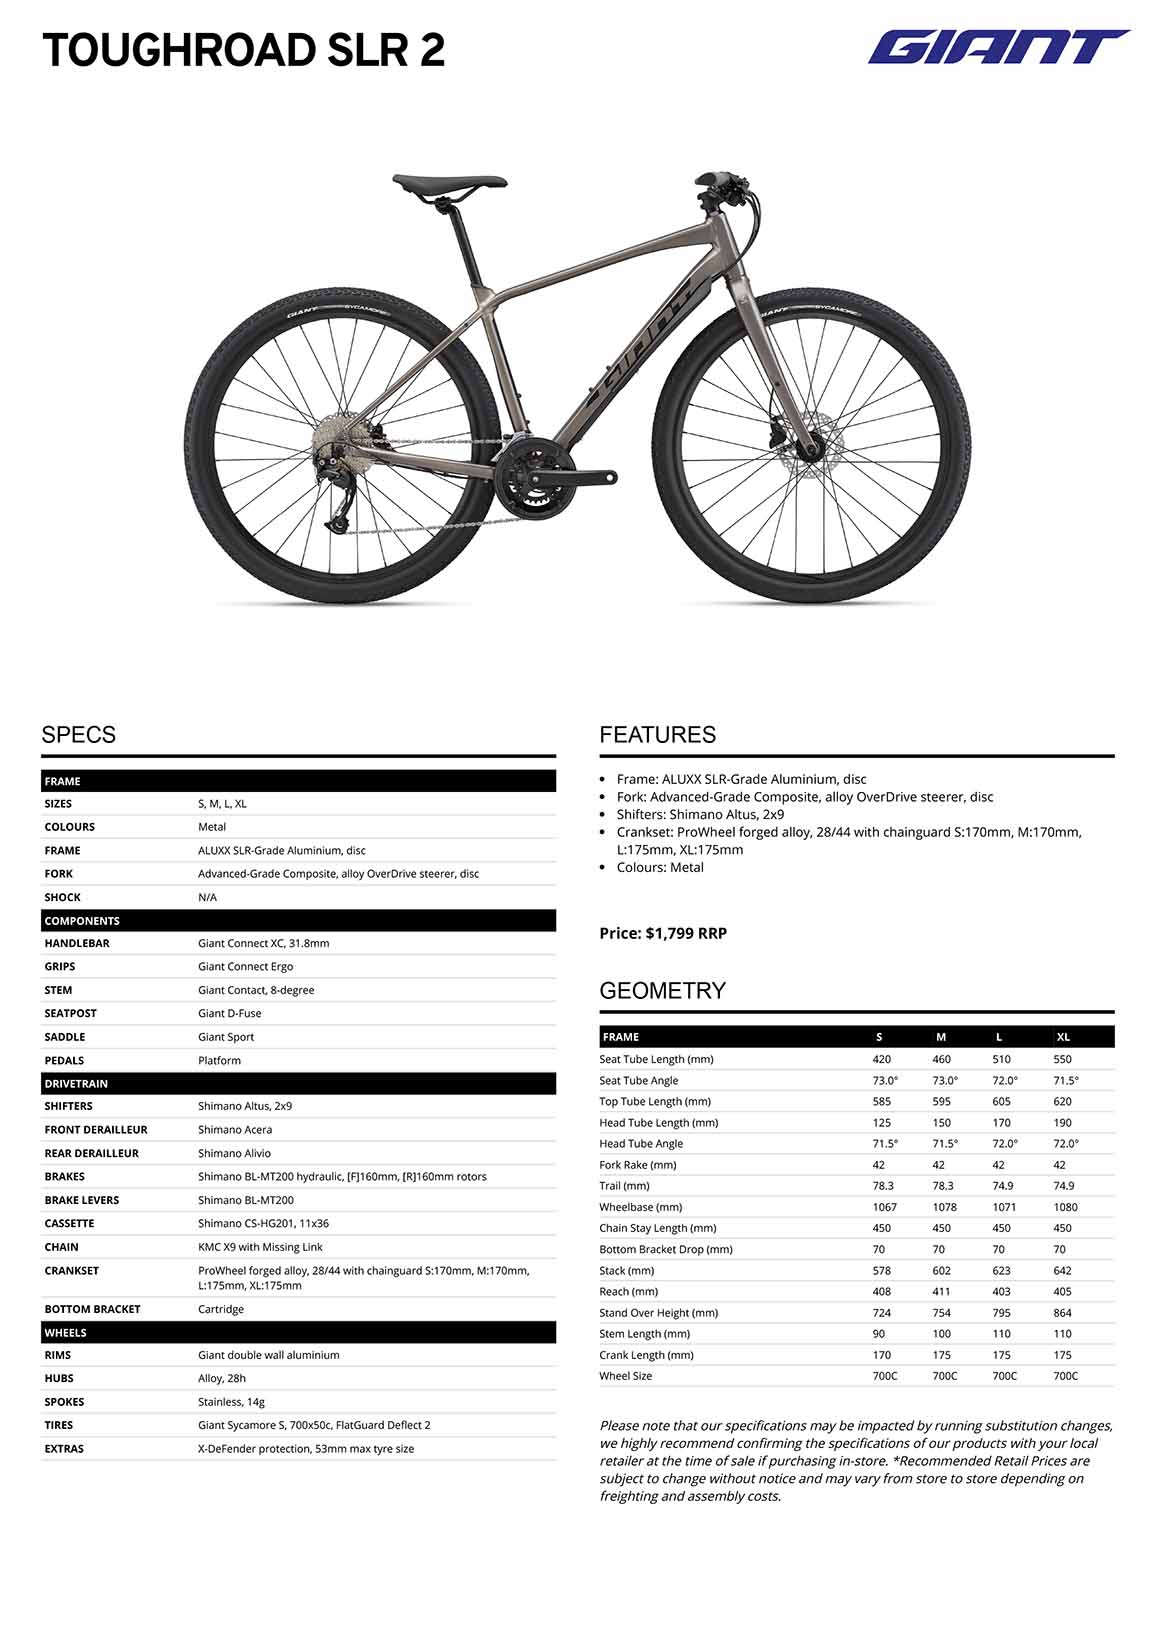 Fiche GIANT ToughRoad SLR 2 2022